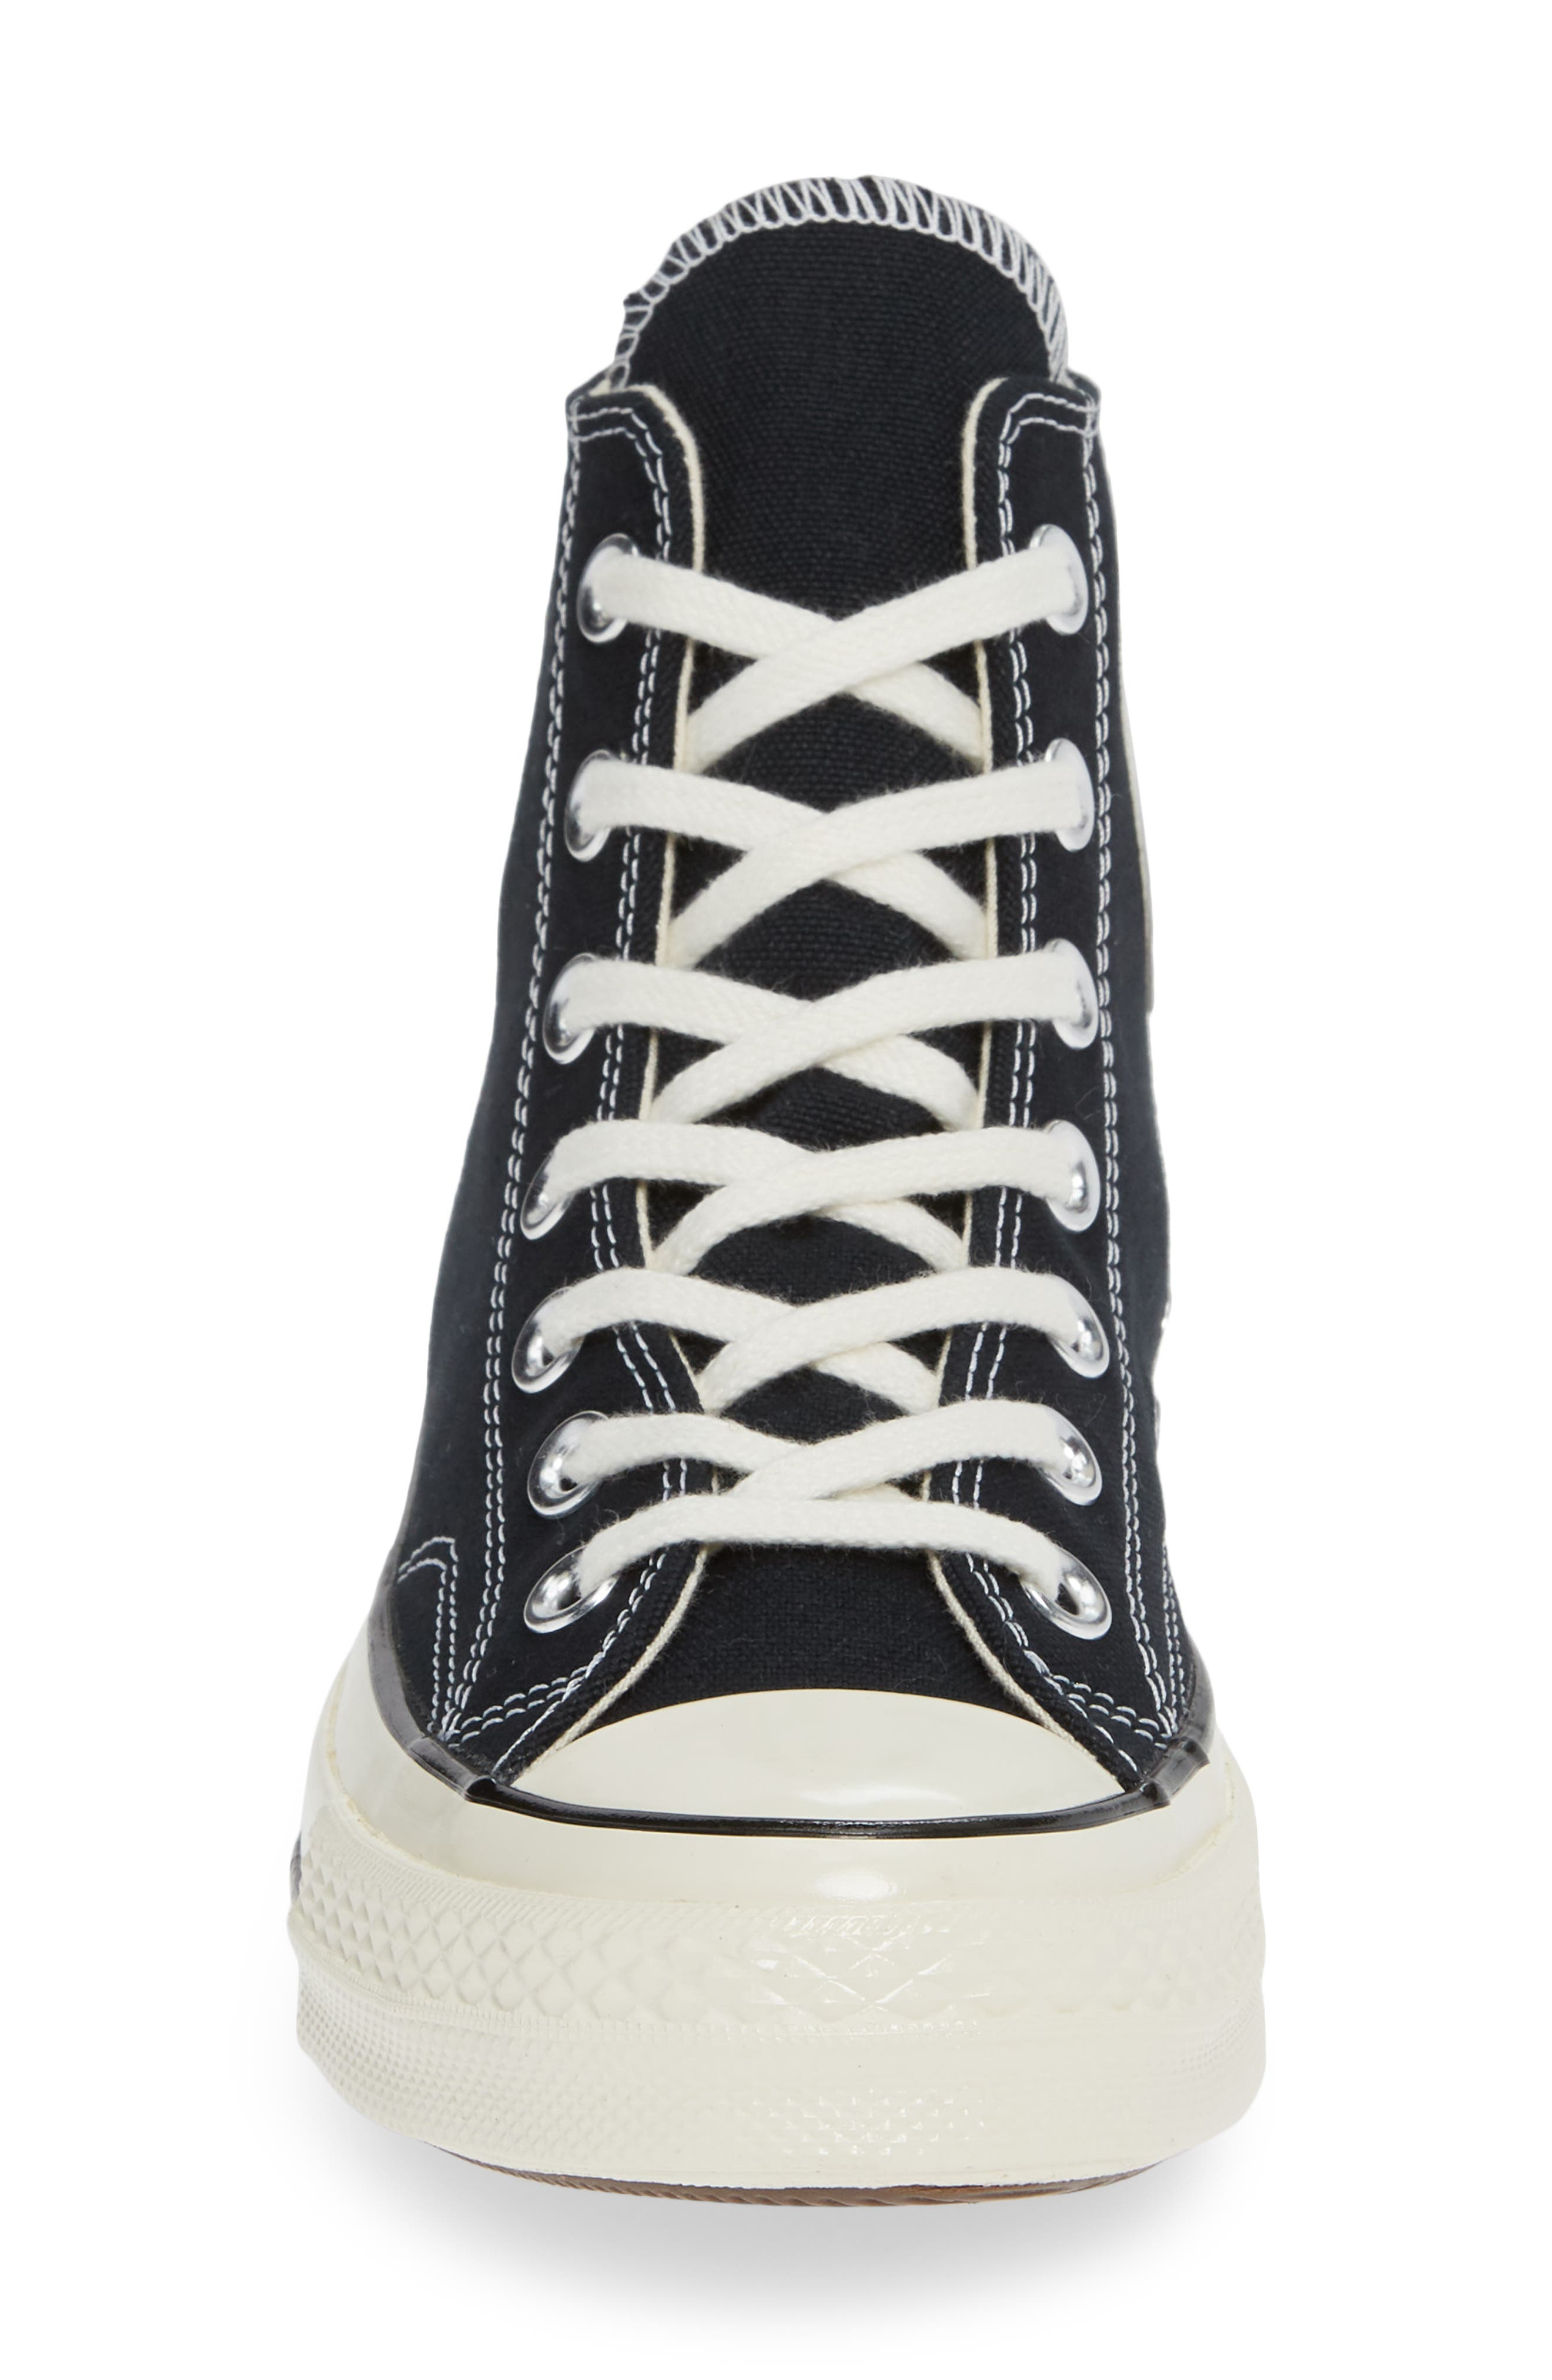 CONVERSE, Chuck Taylor<sup>®</sup> All Star<sup>®</sup> Chuck 70 High Top Sneaker, Alternate thumbnail 4, color, BLACK